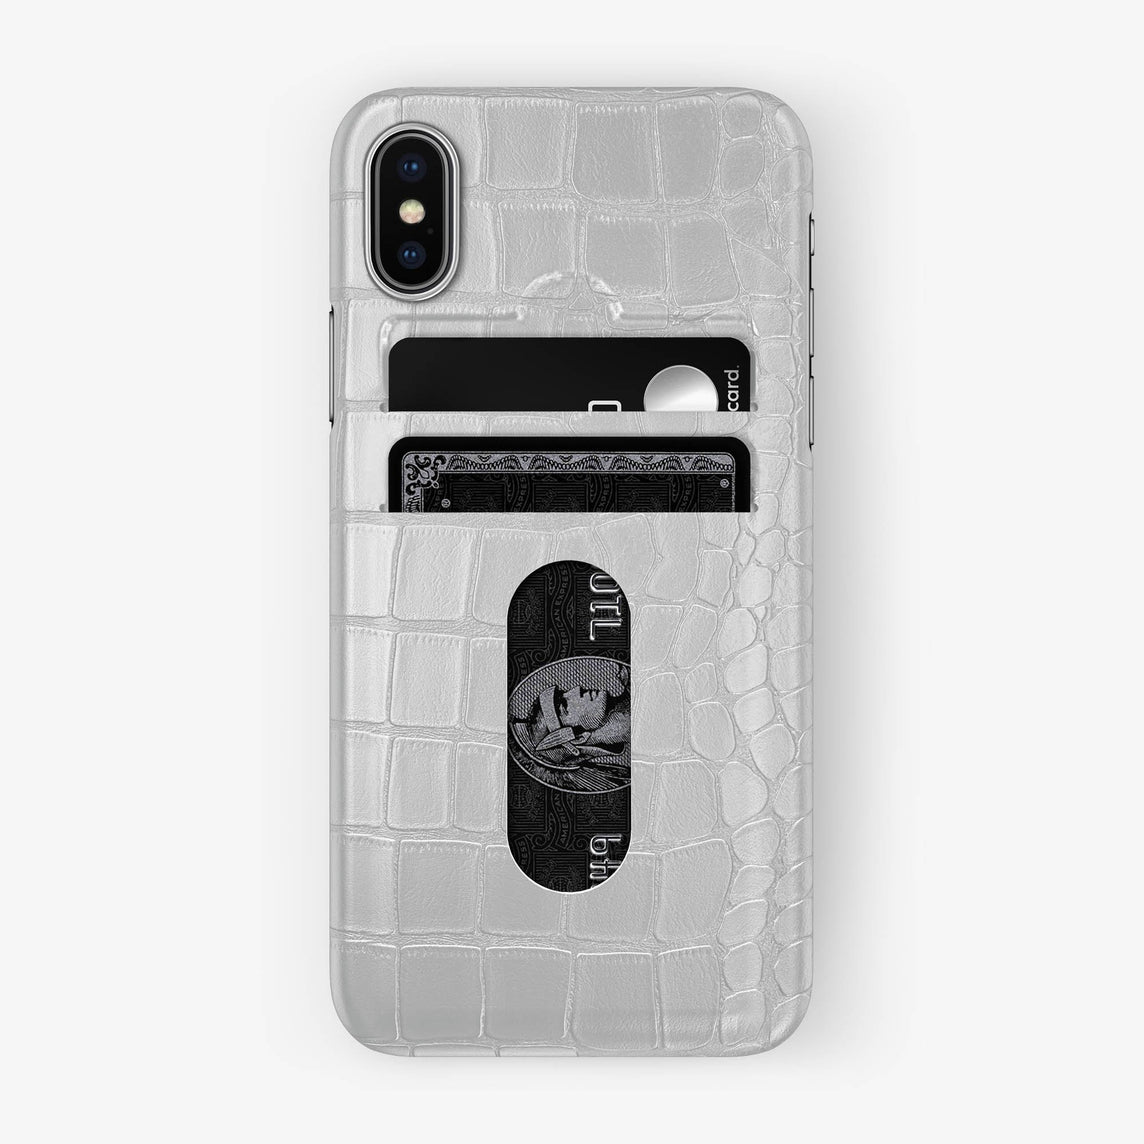 Alligator [iPhone Card Holder Case] [model:iphone-x-case] [colour:white] [finishing:stainless-steel] - Hadoro